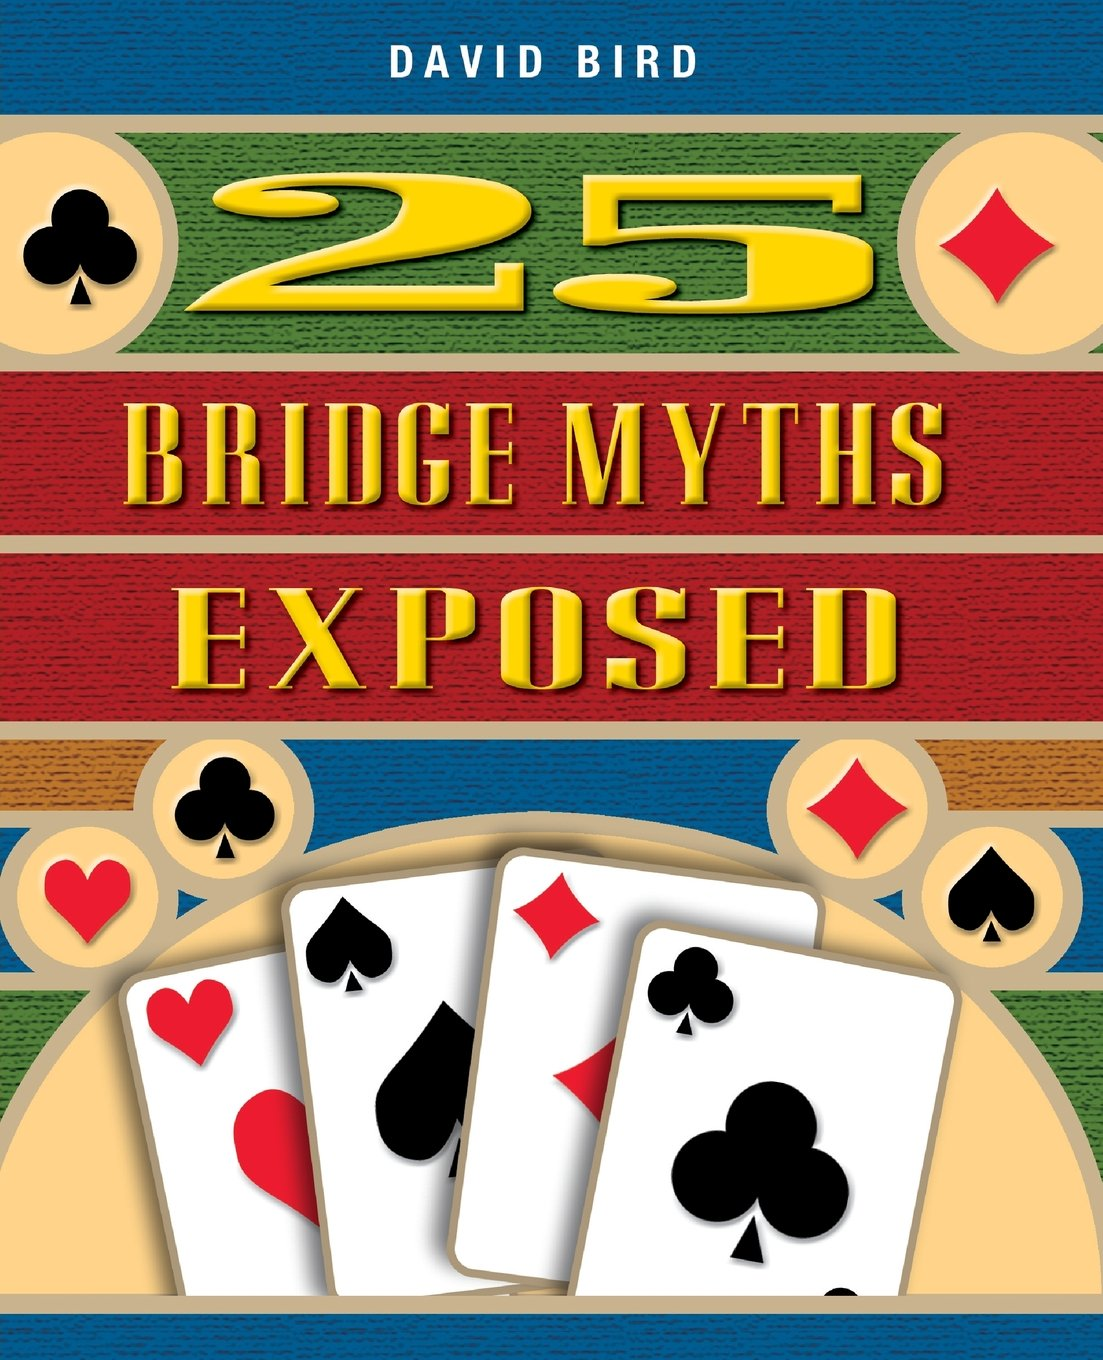 25 Bridge Myths Exposed Paperback – July 1, 2002 David Bird Master Point Press 1894154525 9781894154529